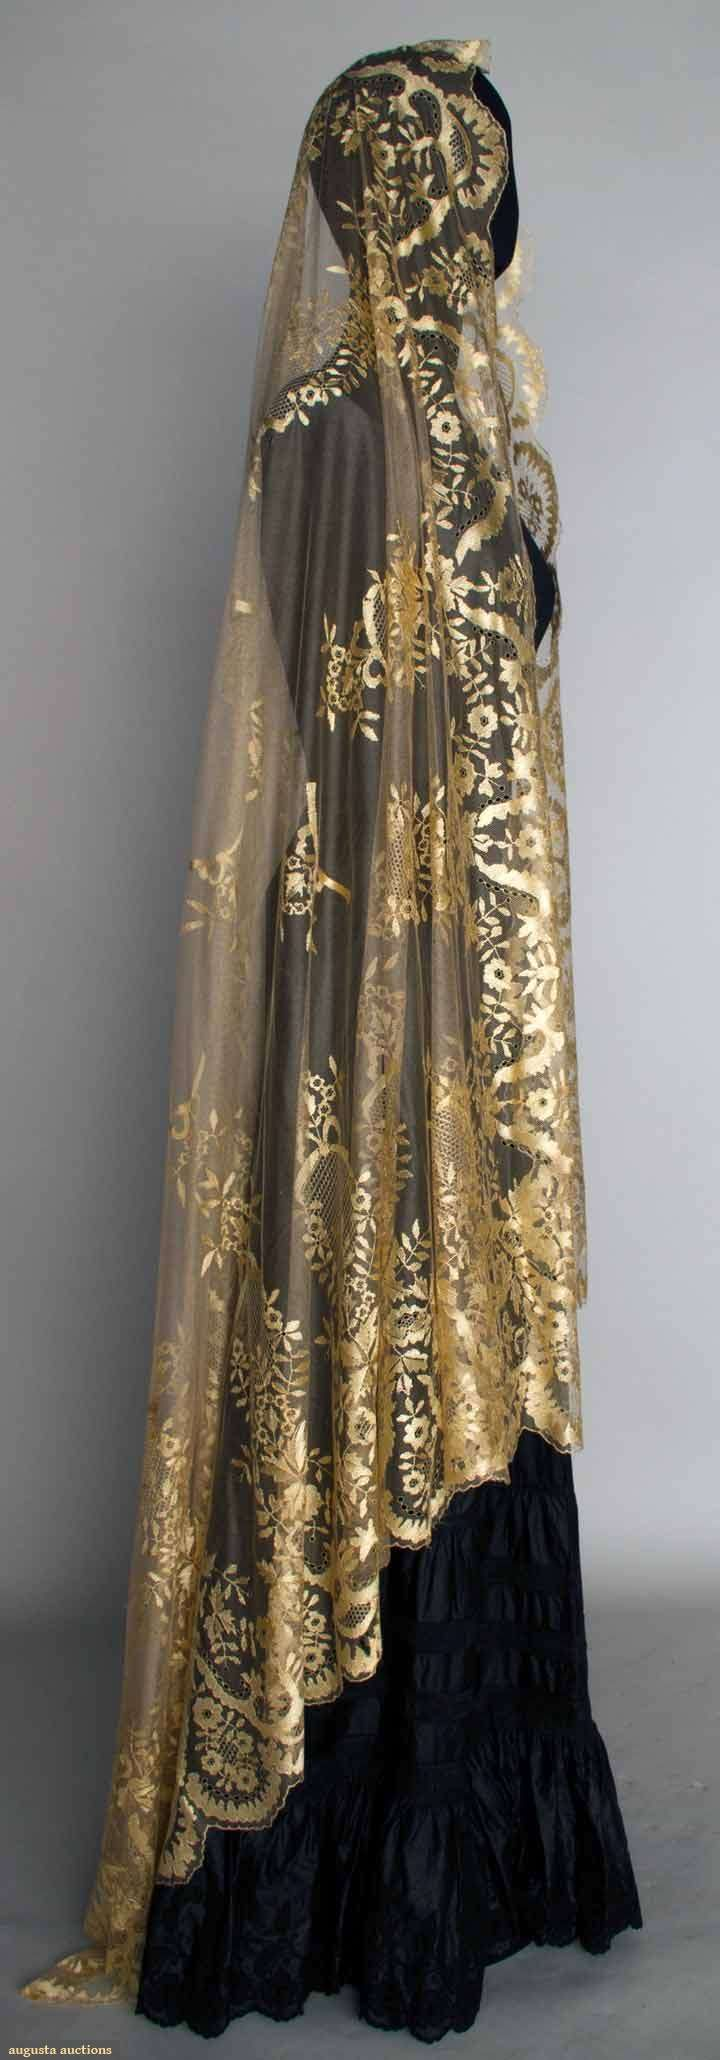 CREAM SILK LACE VEIL, MID 19TH C~Silk reseau w/ hand embroidered & drawnwork silk toile, design of flower garlands, bows, & drawnwork catouches